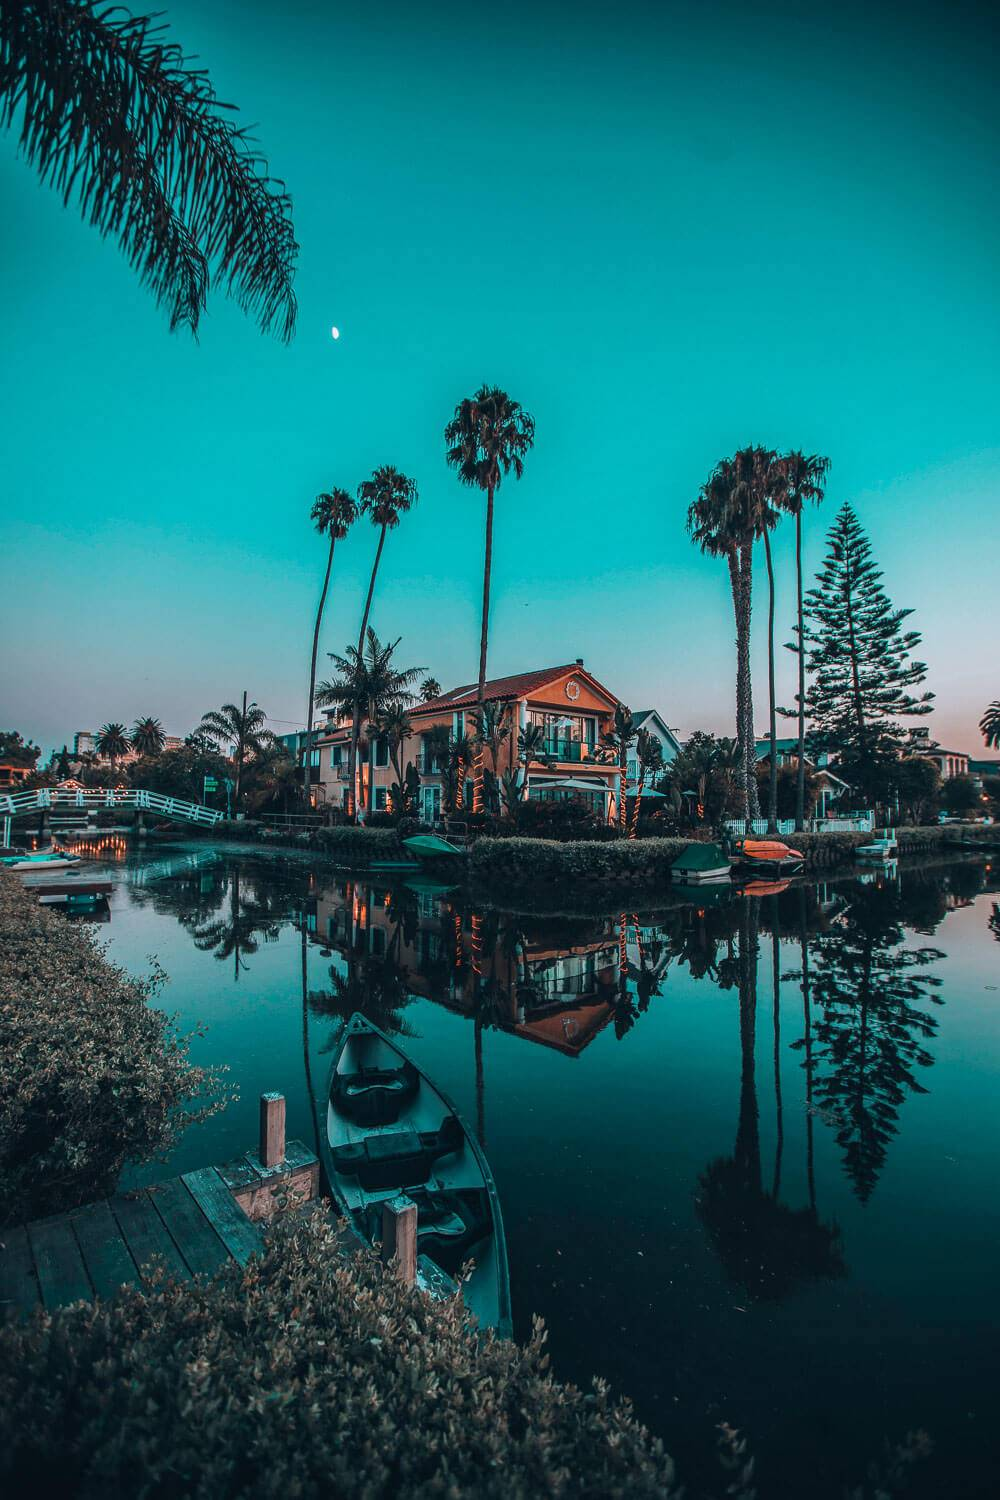 YYou might not think that Venice beach is one of the one of the places to explore at night in LA, but you'd be wrong. It should definitely be on your list of things to do in LA at night and during the day.